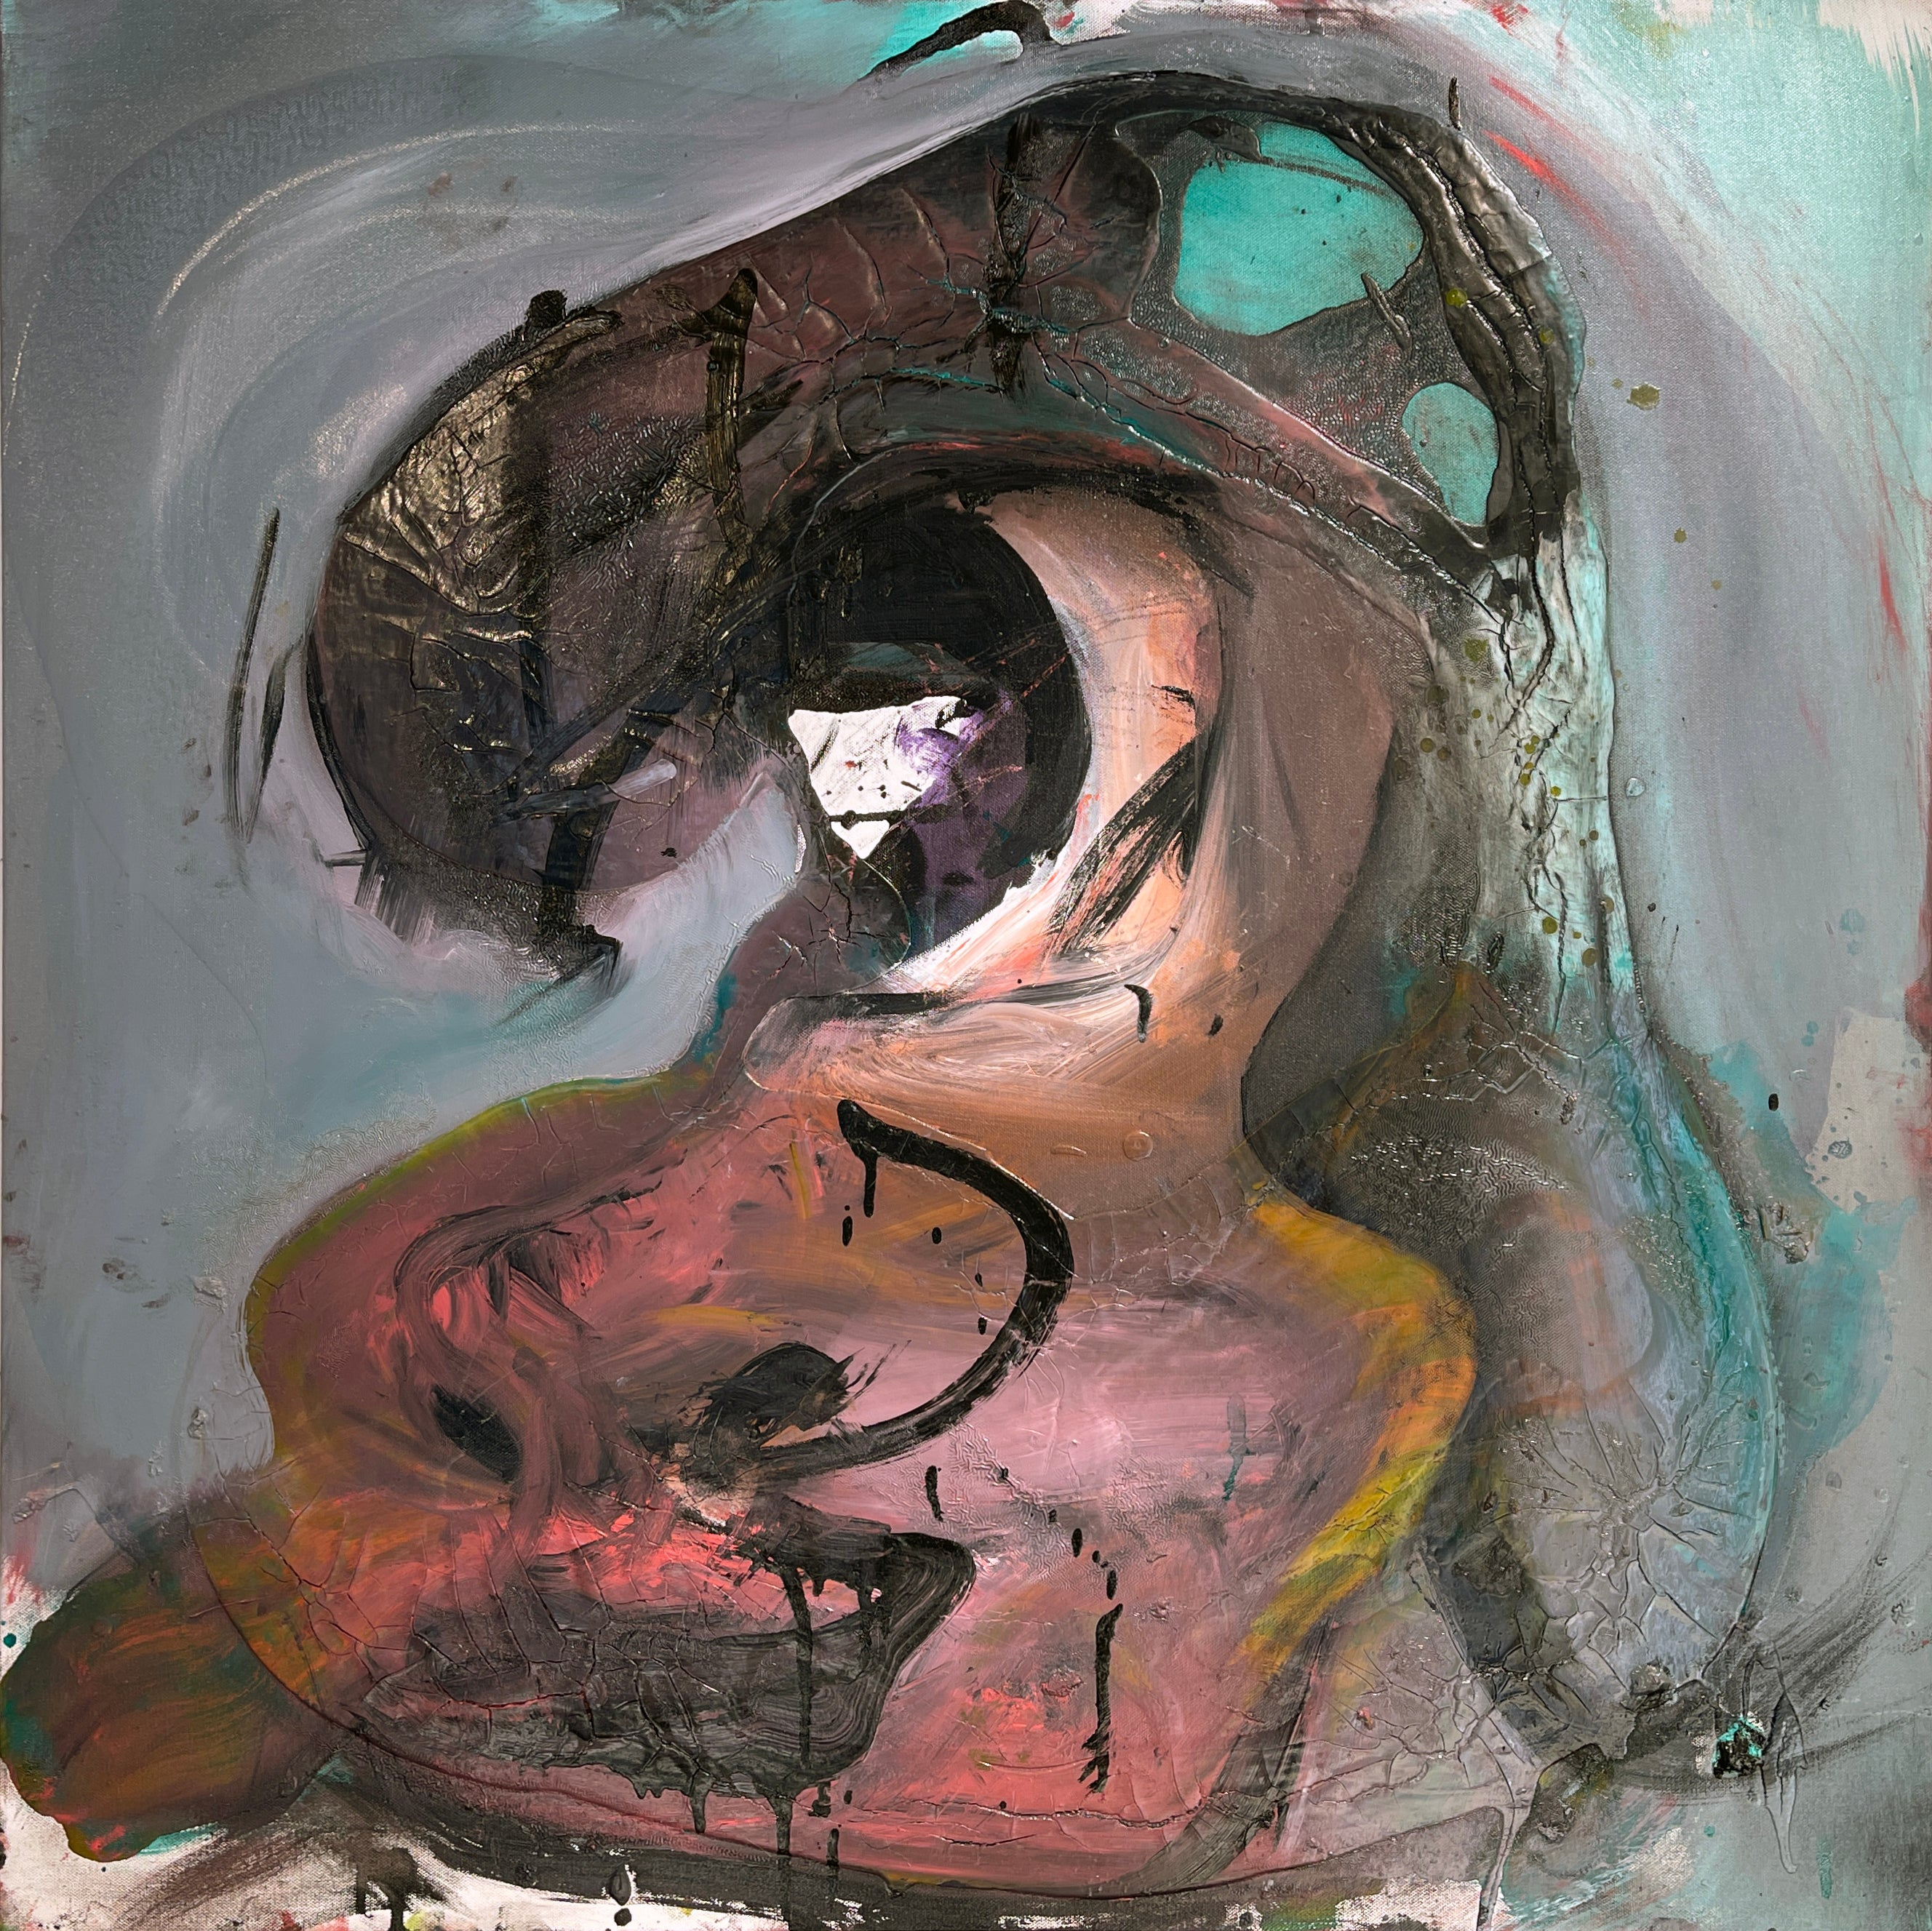 Cartoon Head, Abstract Oil Painting, Figure with Shades of Aqua, Gray & Brown